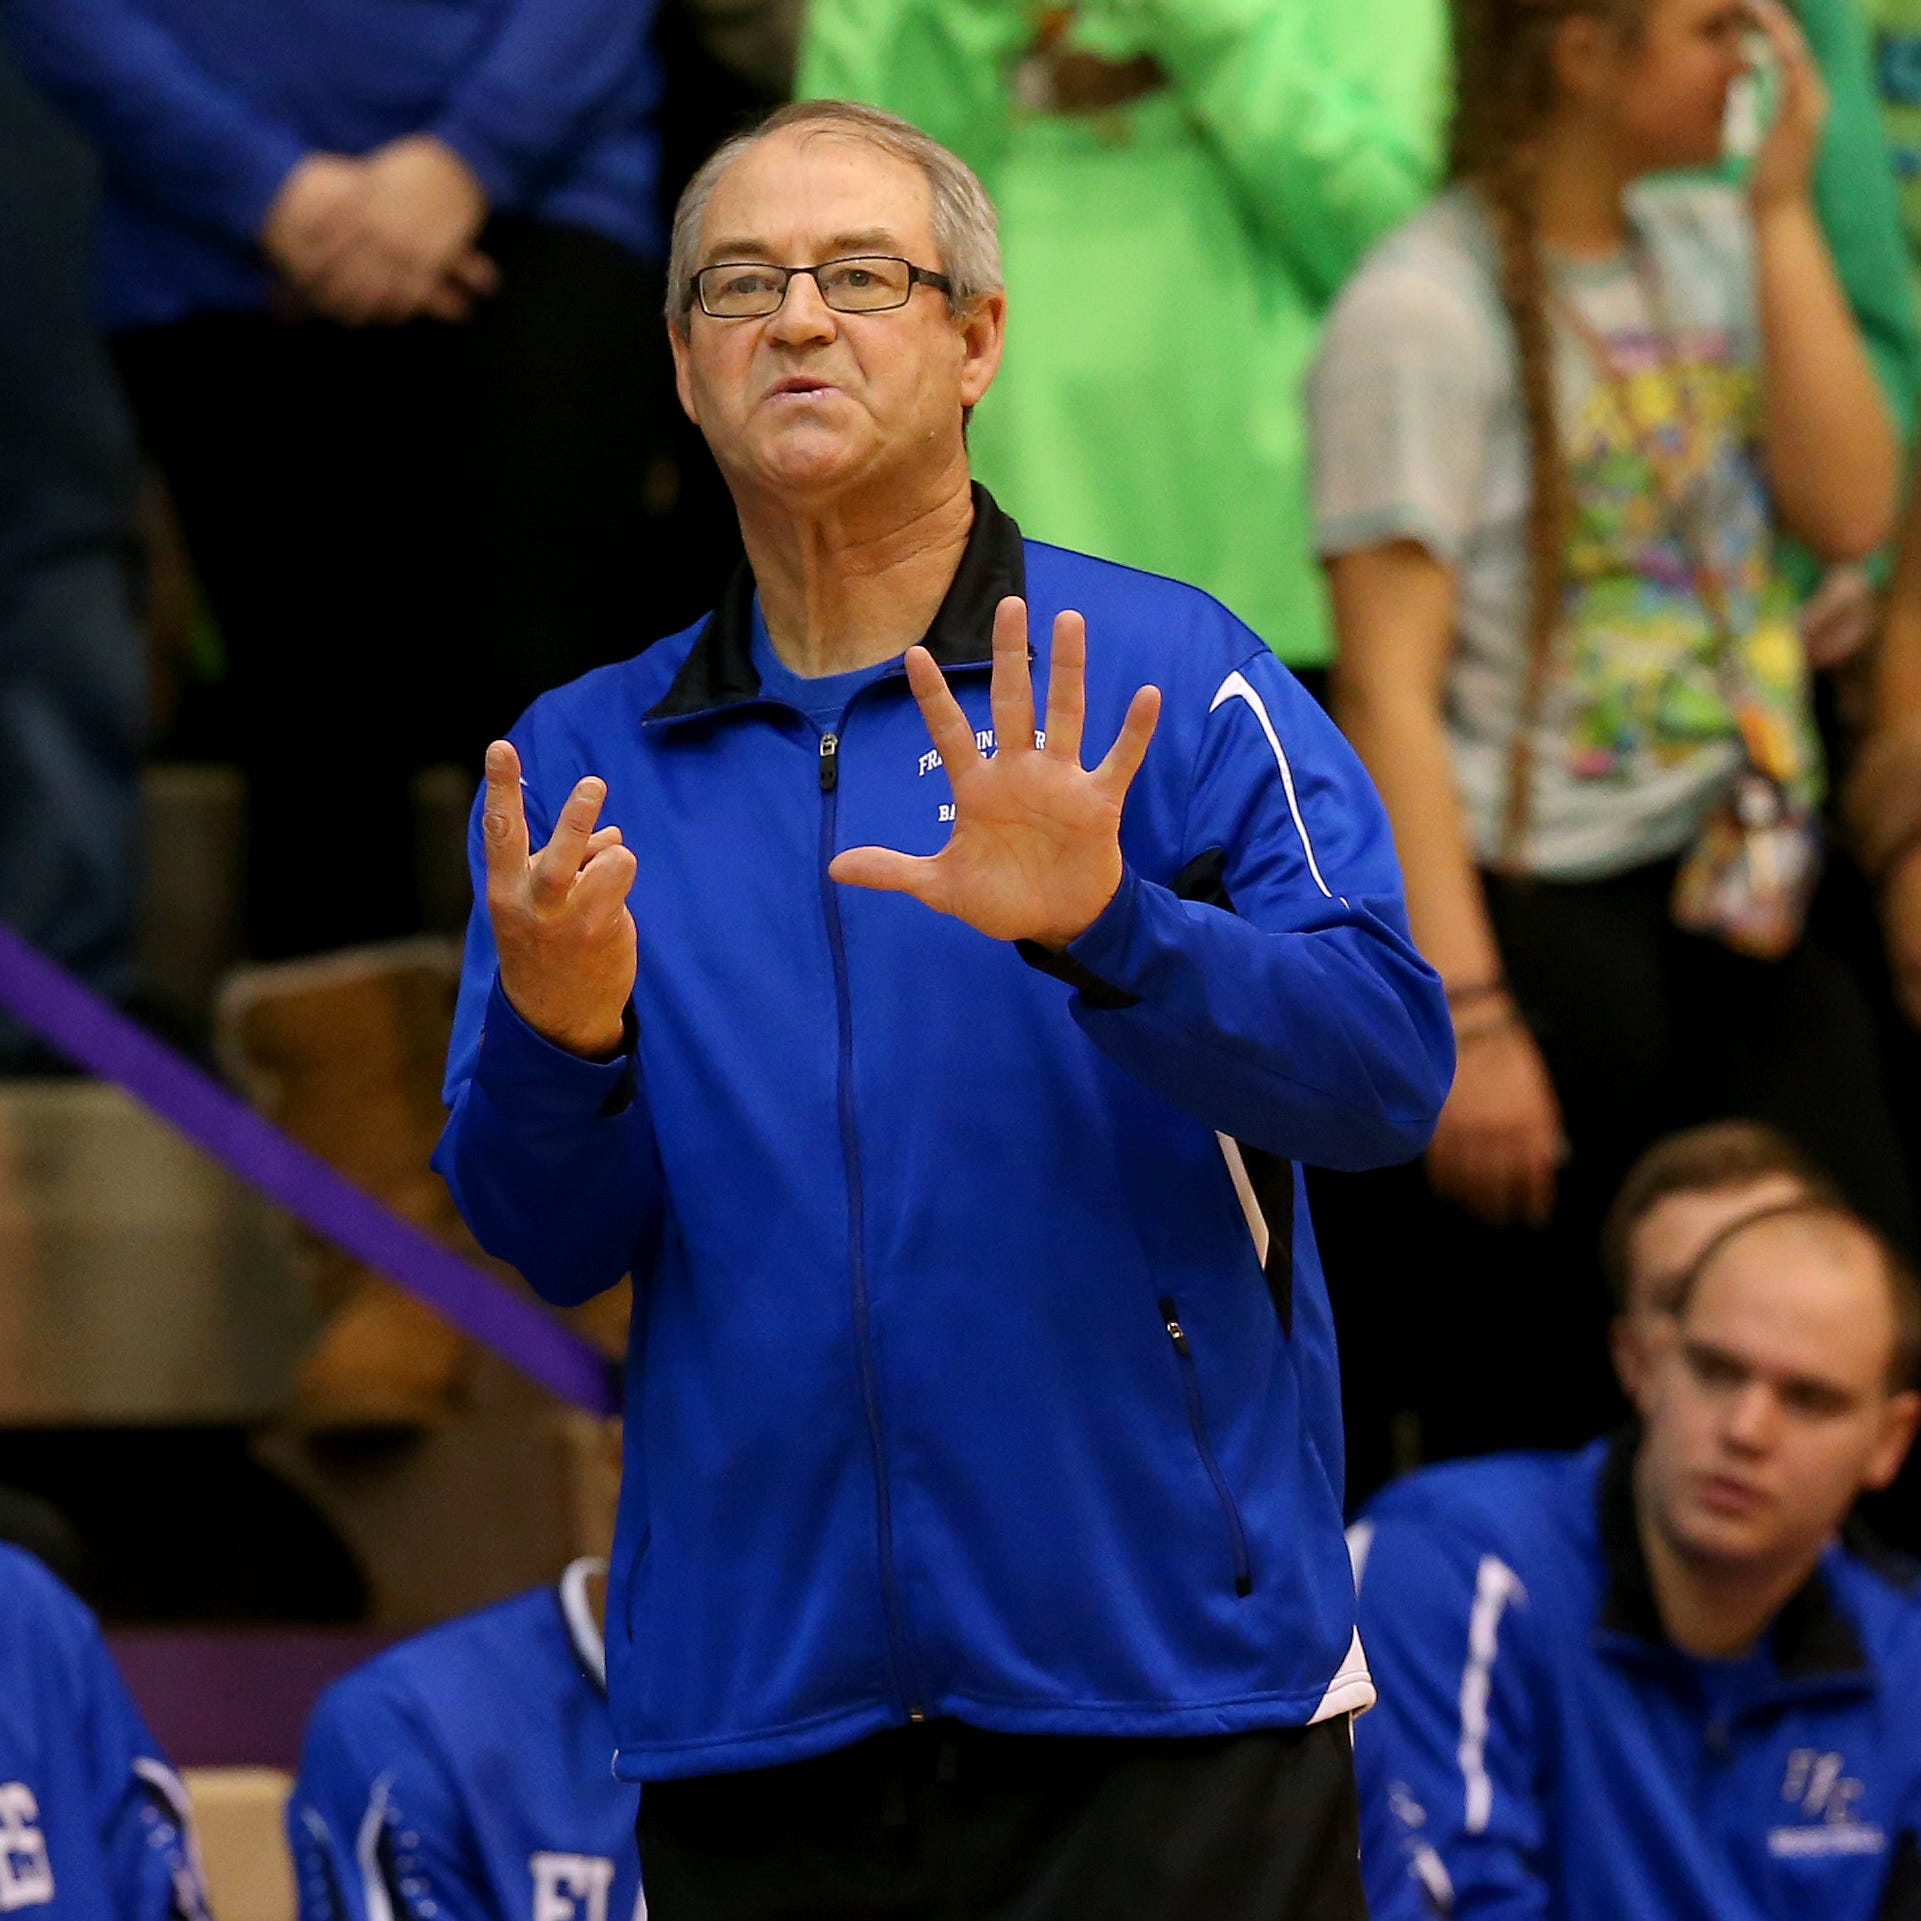 Franklin Central fires boys basketball coach John Rockey